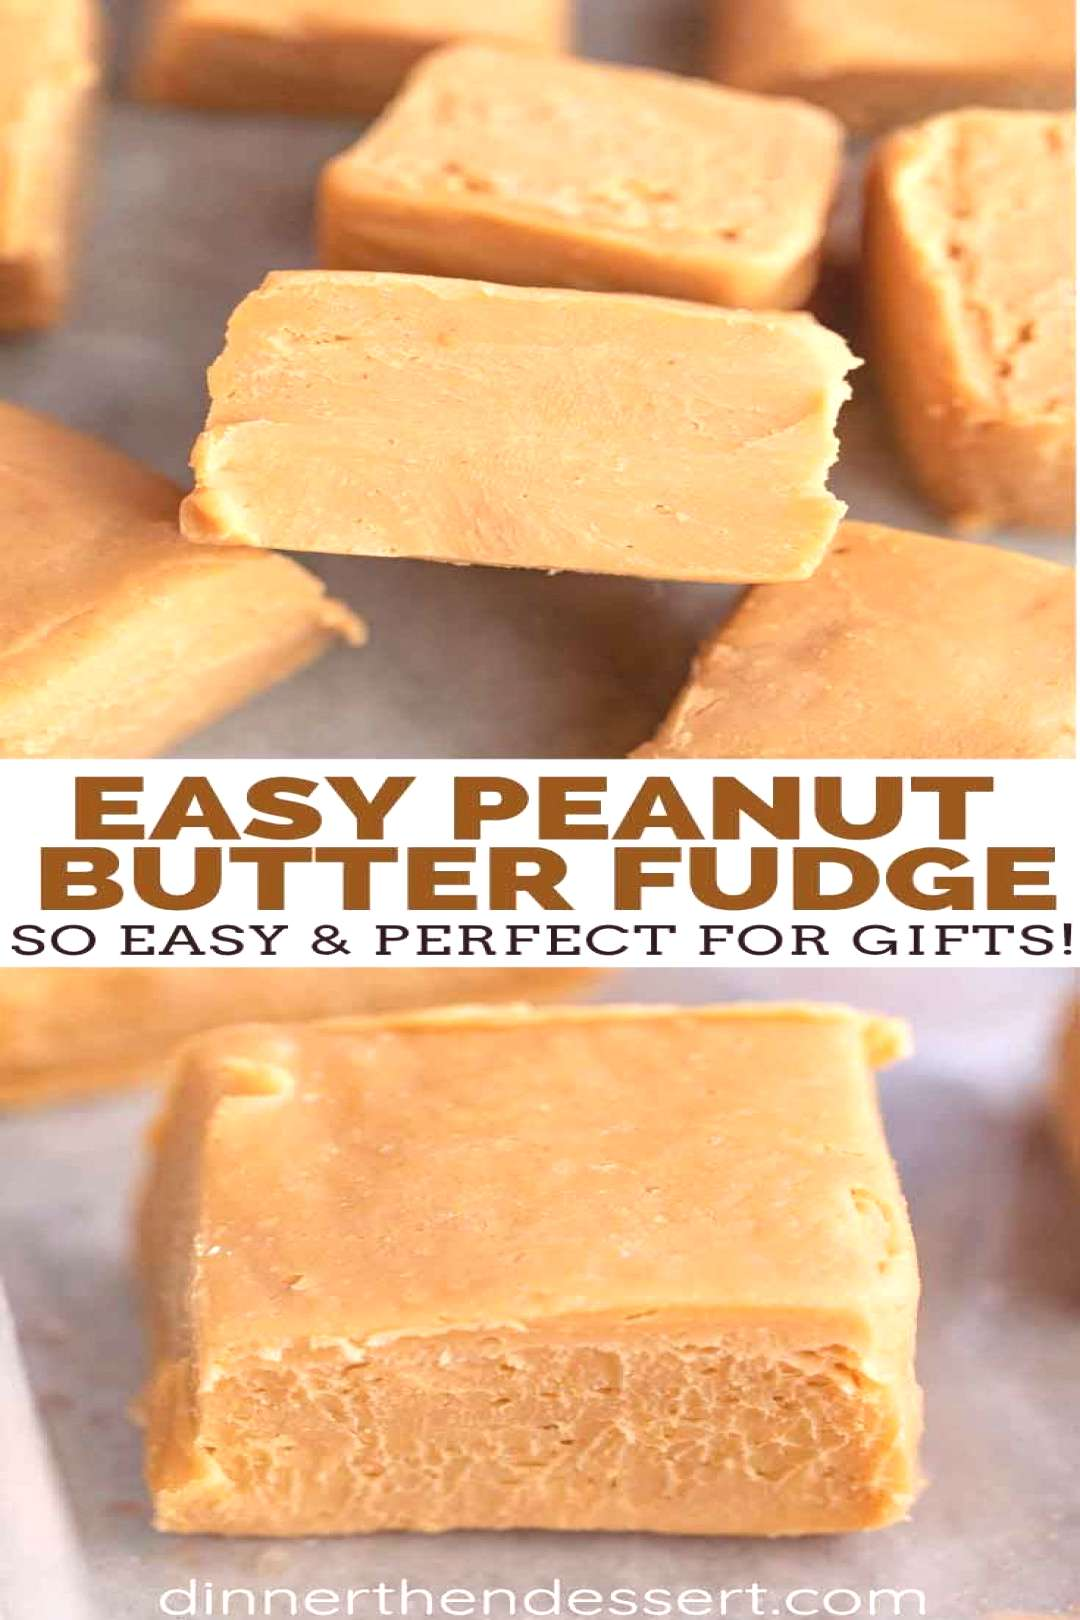 Peanut Butter Fudge is a smooth, buttery and rich old-fashioned recipe, with only 6 ingredients tha